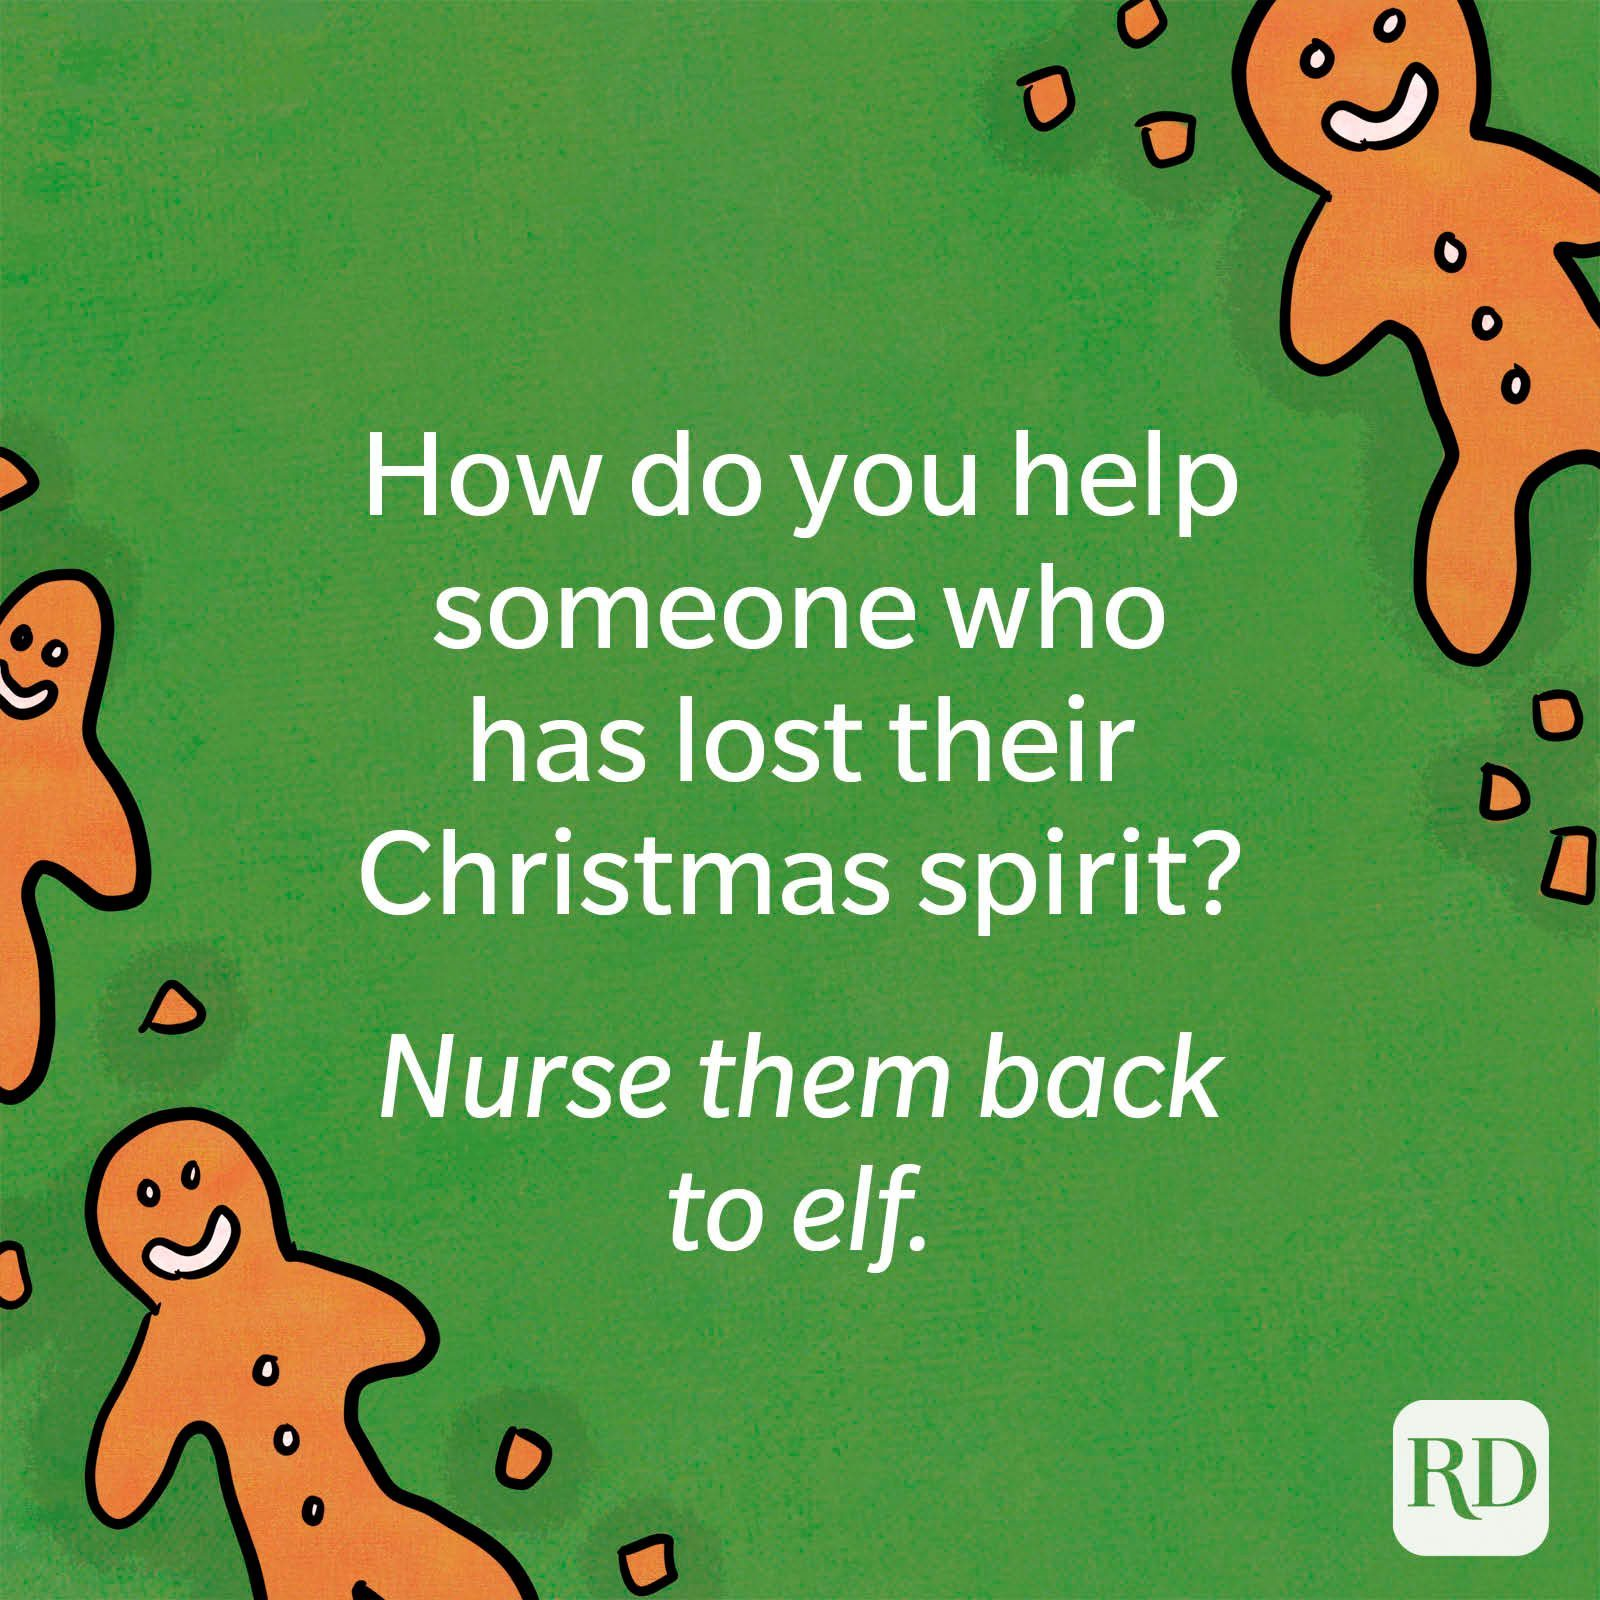 How do you help someone who has lost their Christmas spirit?